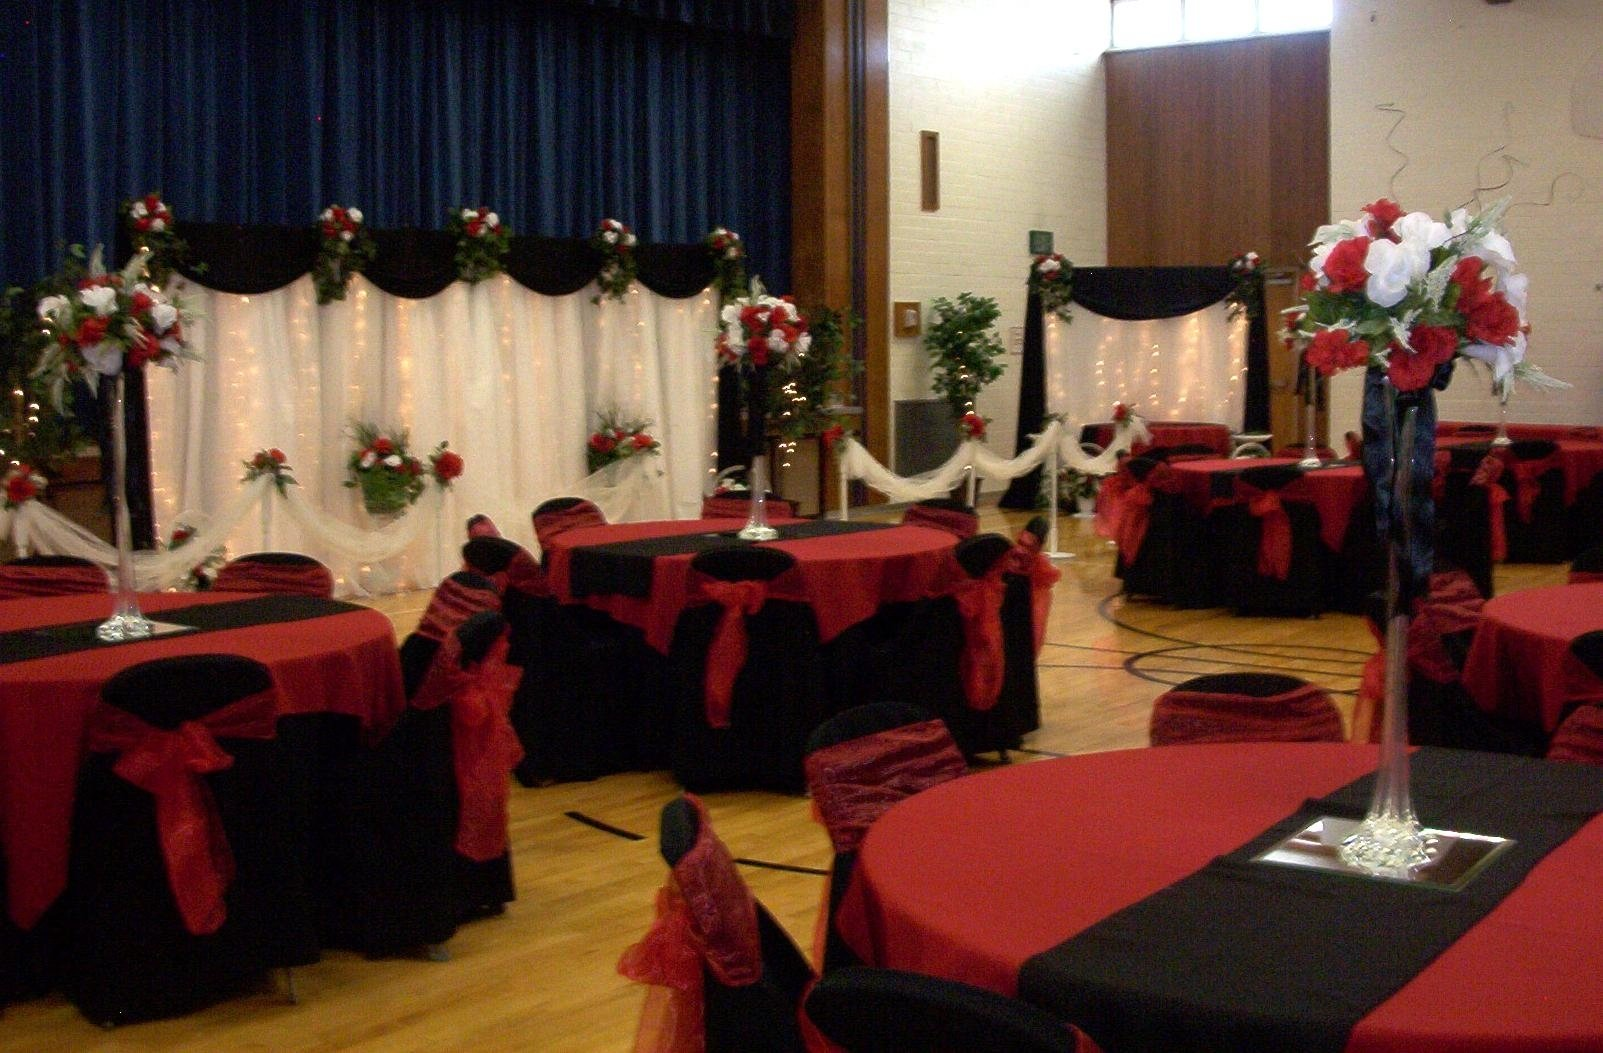 10 Ideal Black Red And White Wedding Ideas red and black wedding centerpieces wedding ideas uxjj 1 2020